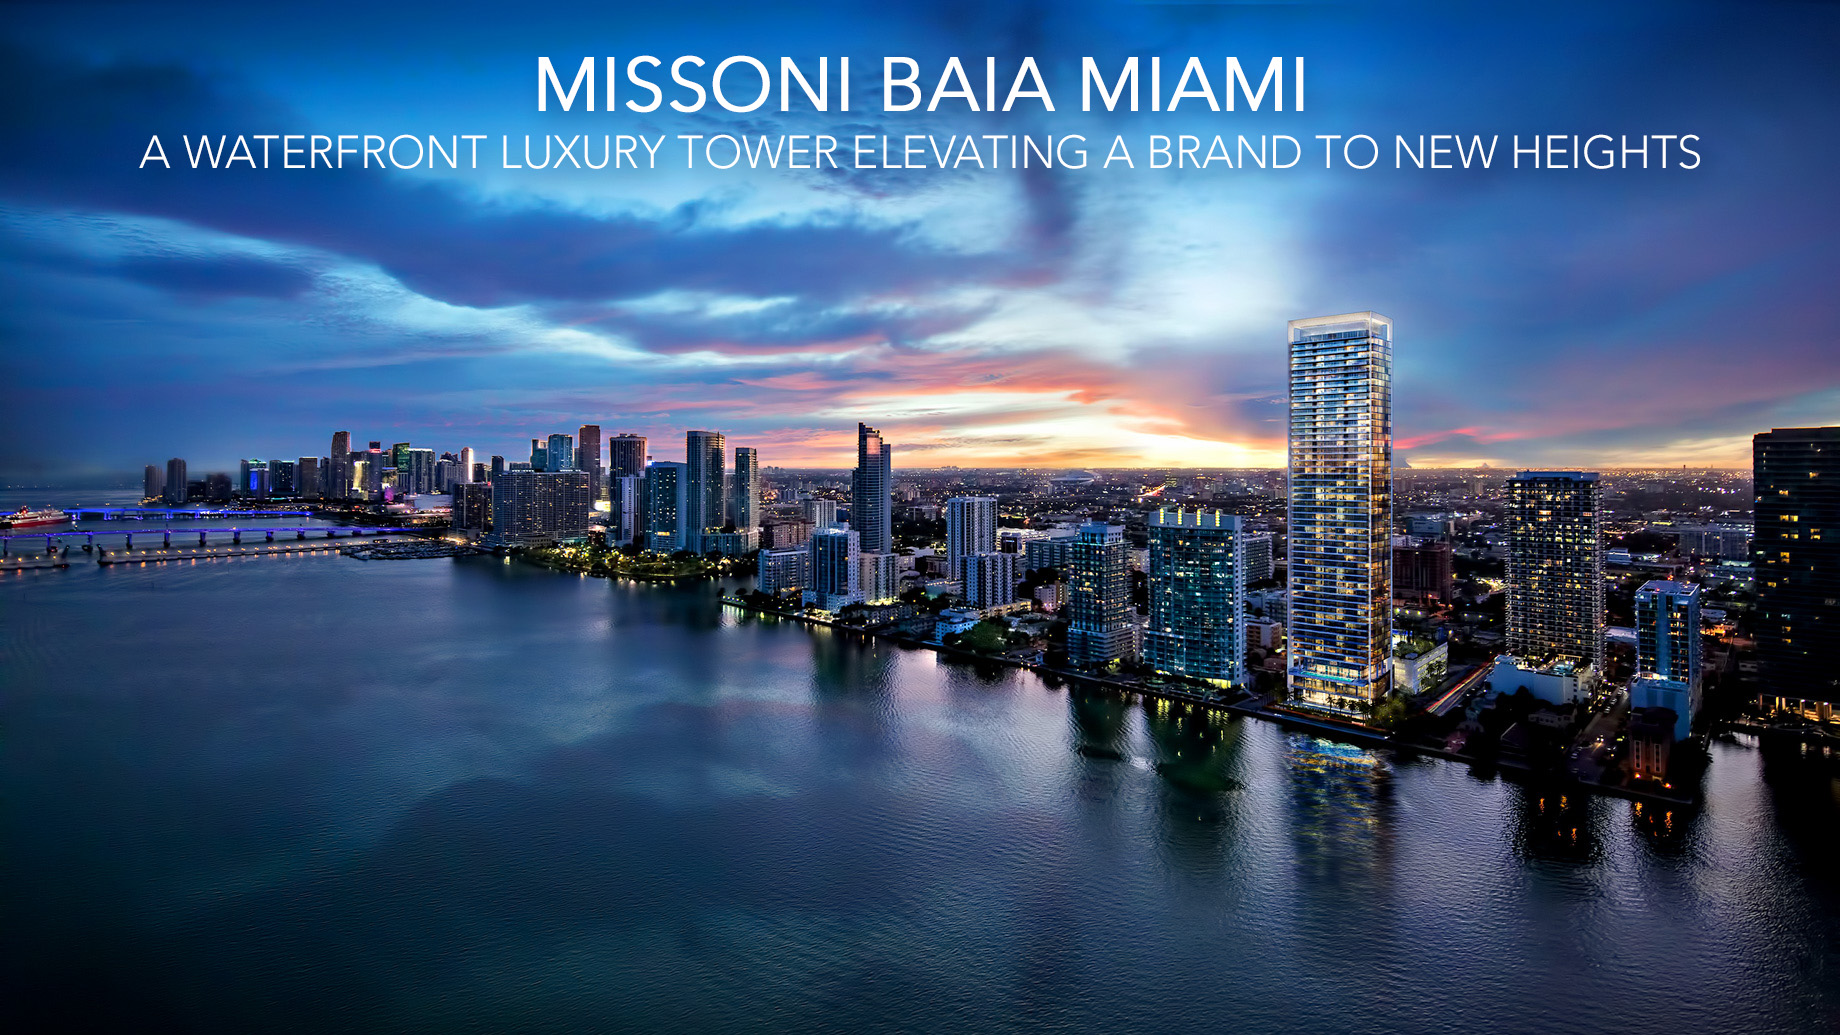 Missoni Baia Miami - A Waterfront Luxury Tower Elevating a Brand to New Heights